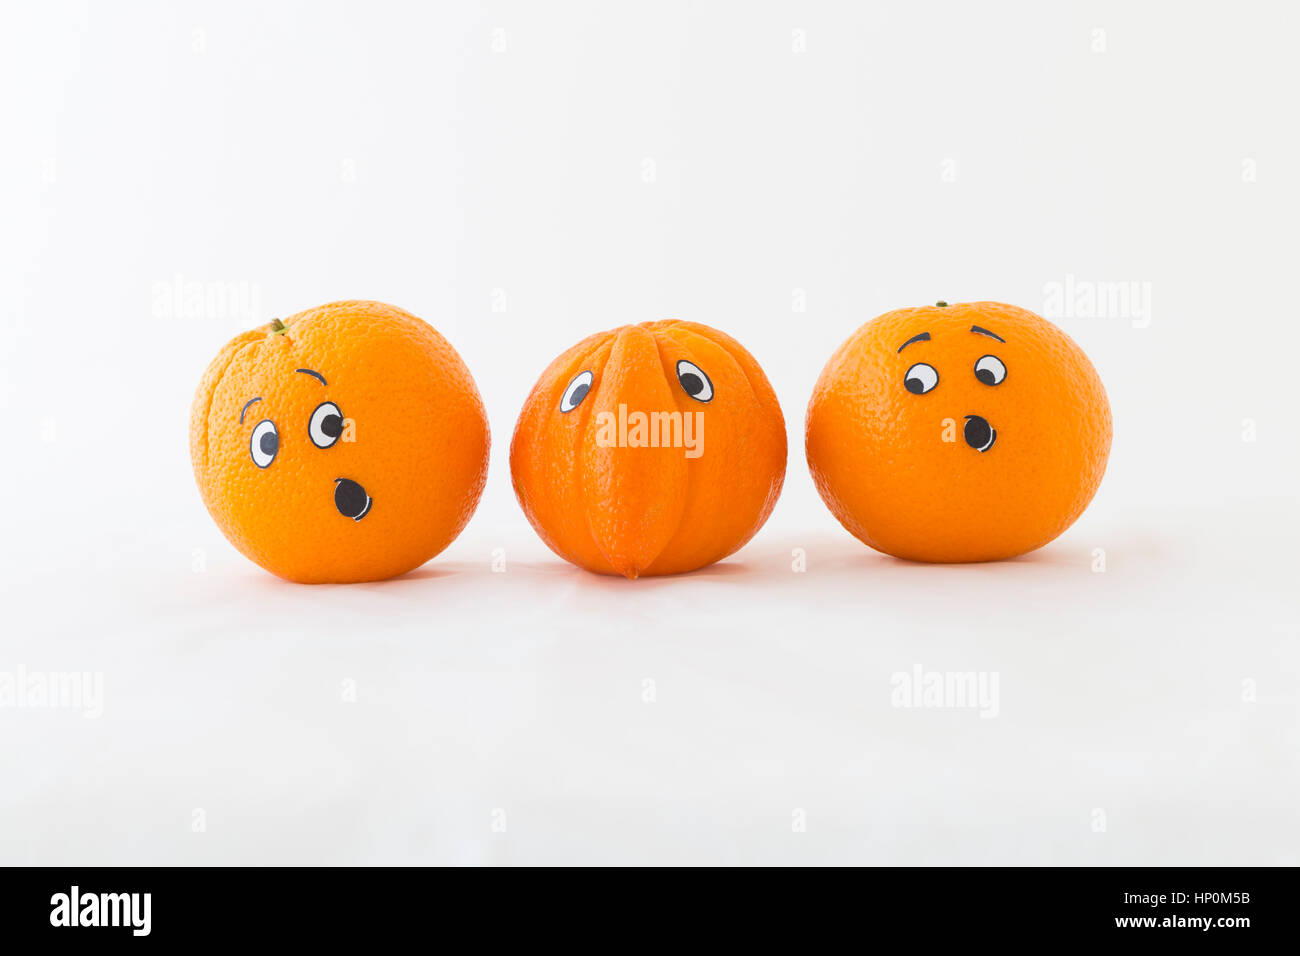 Fresh oranges with funny faces in front of white background. One orange has a huge nose - Stock Image